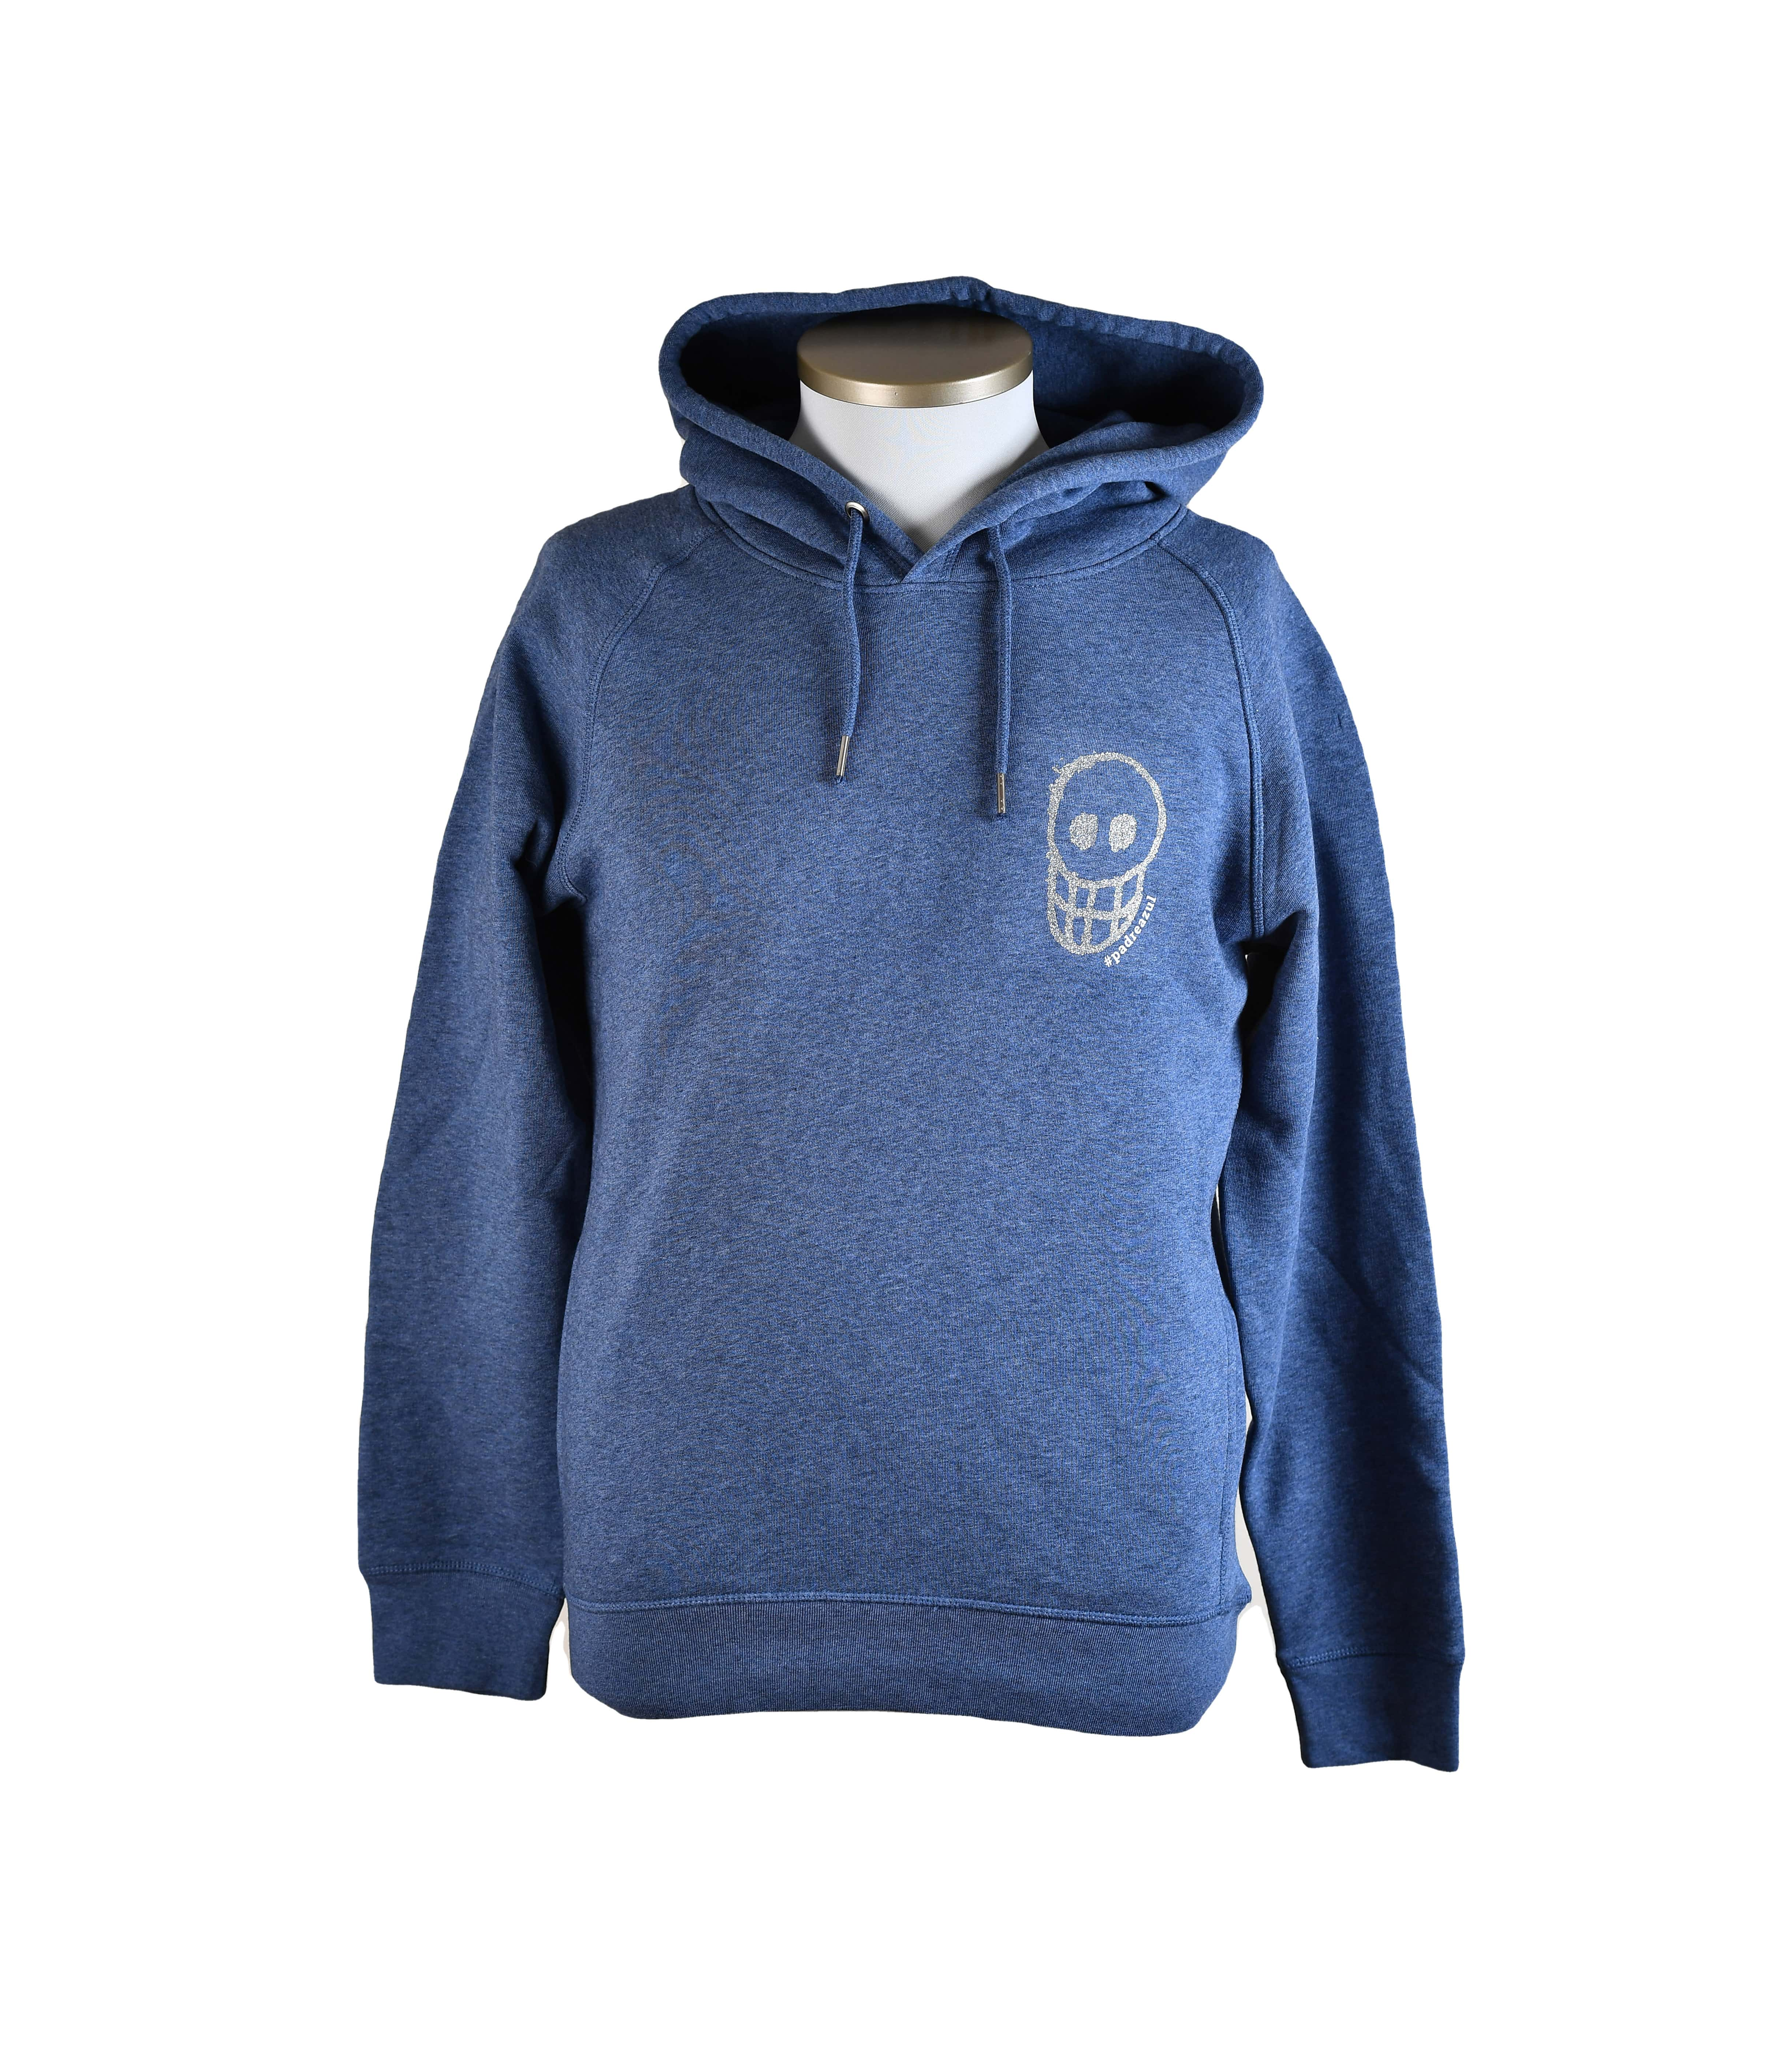 Ramon hooded sweater with side pockets